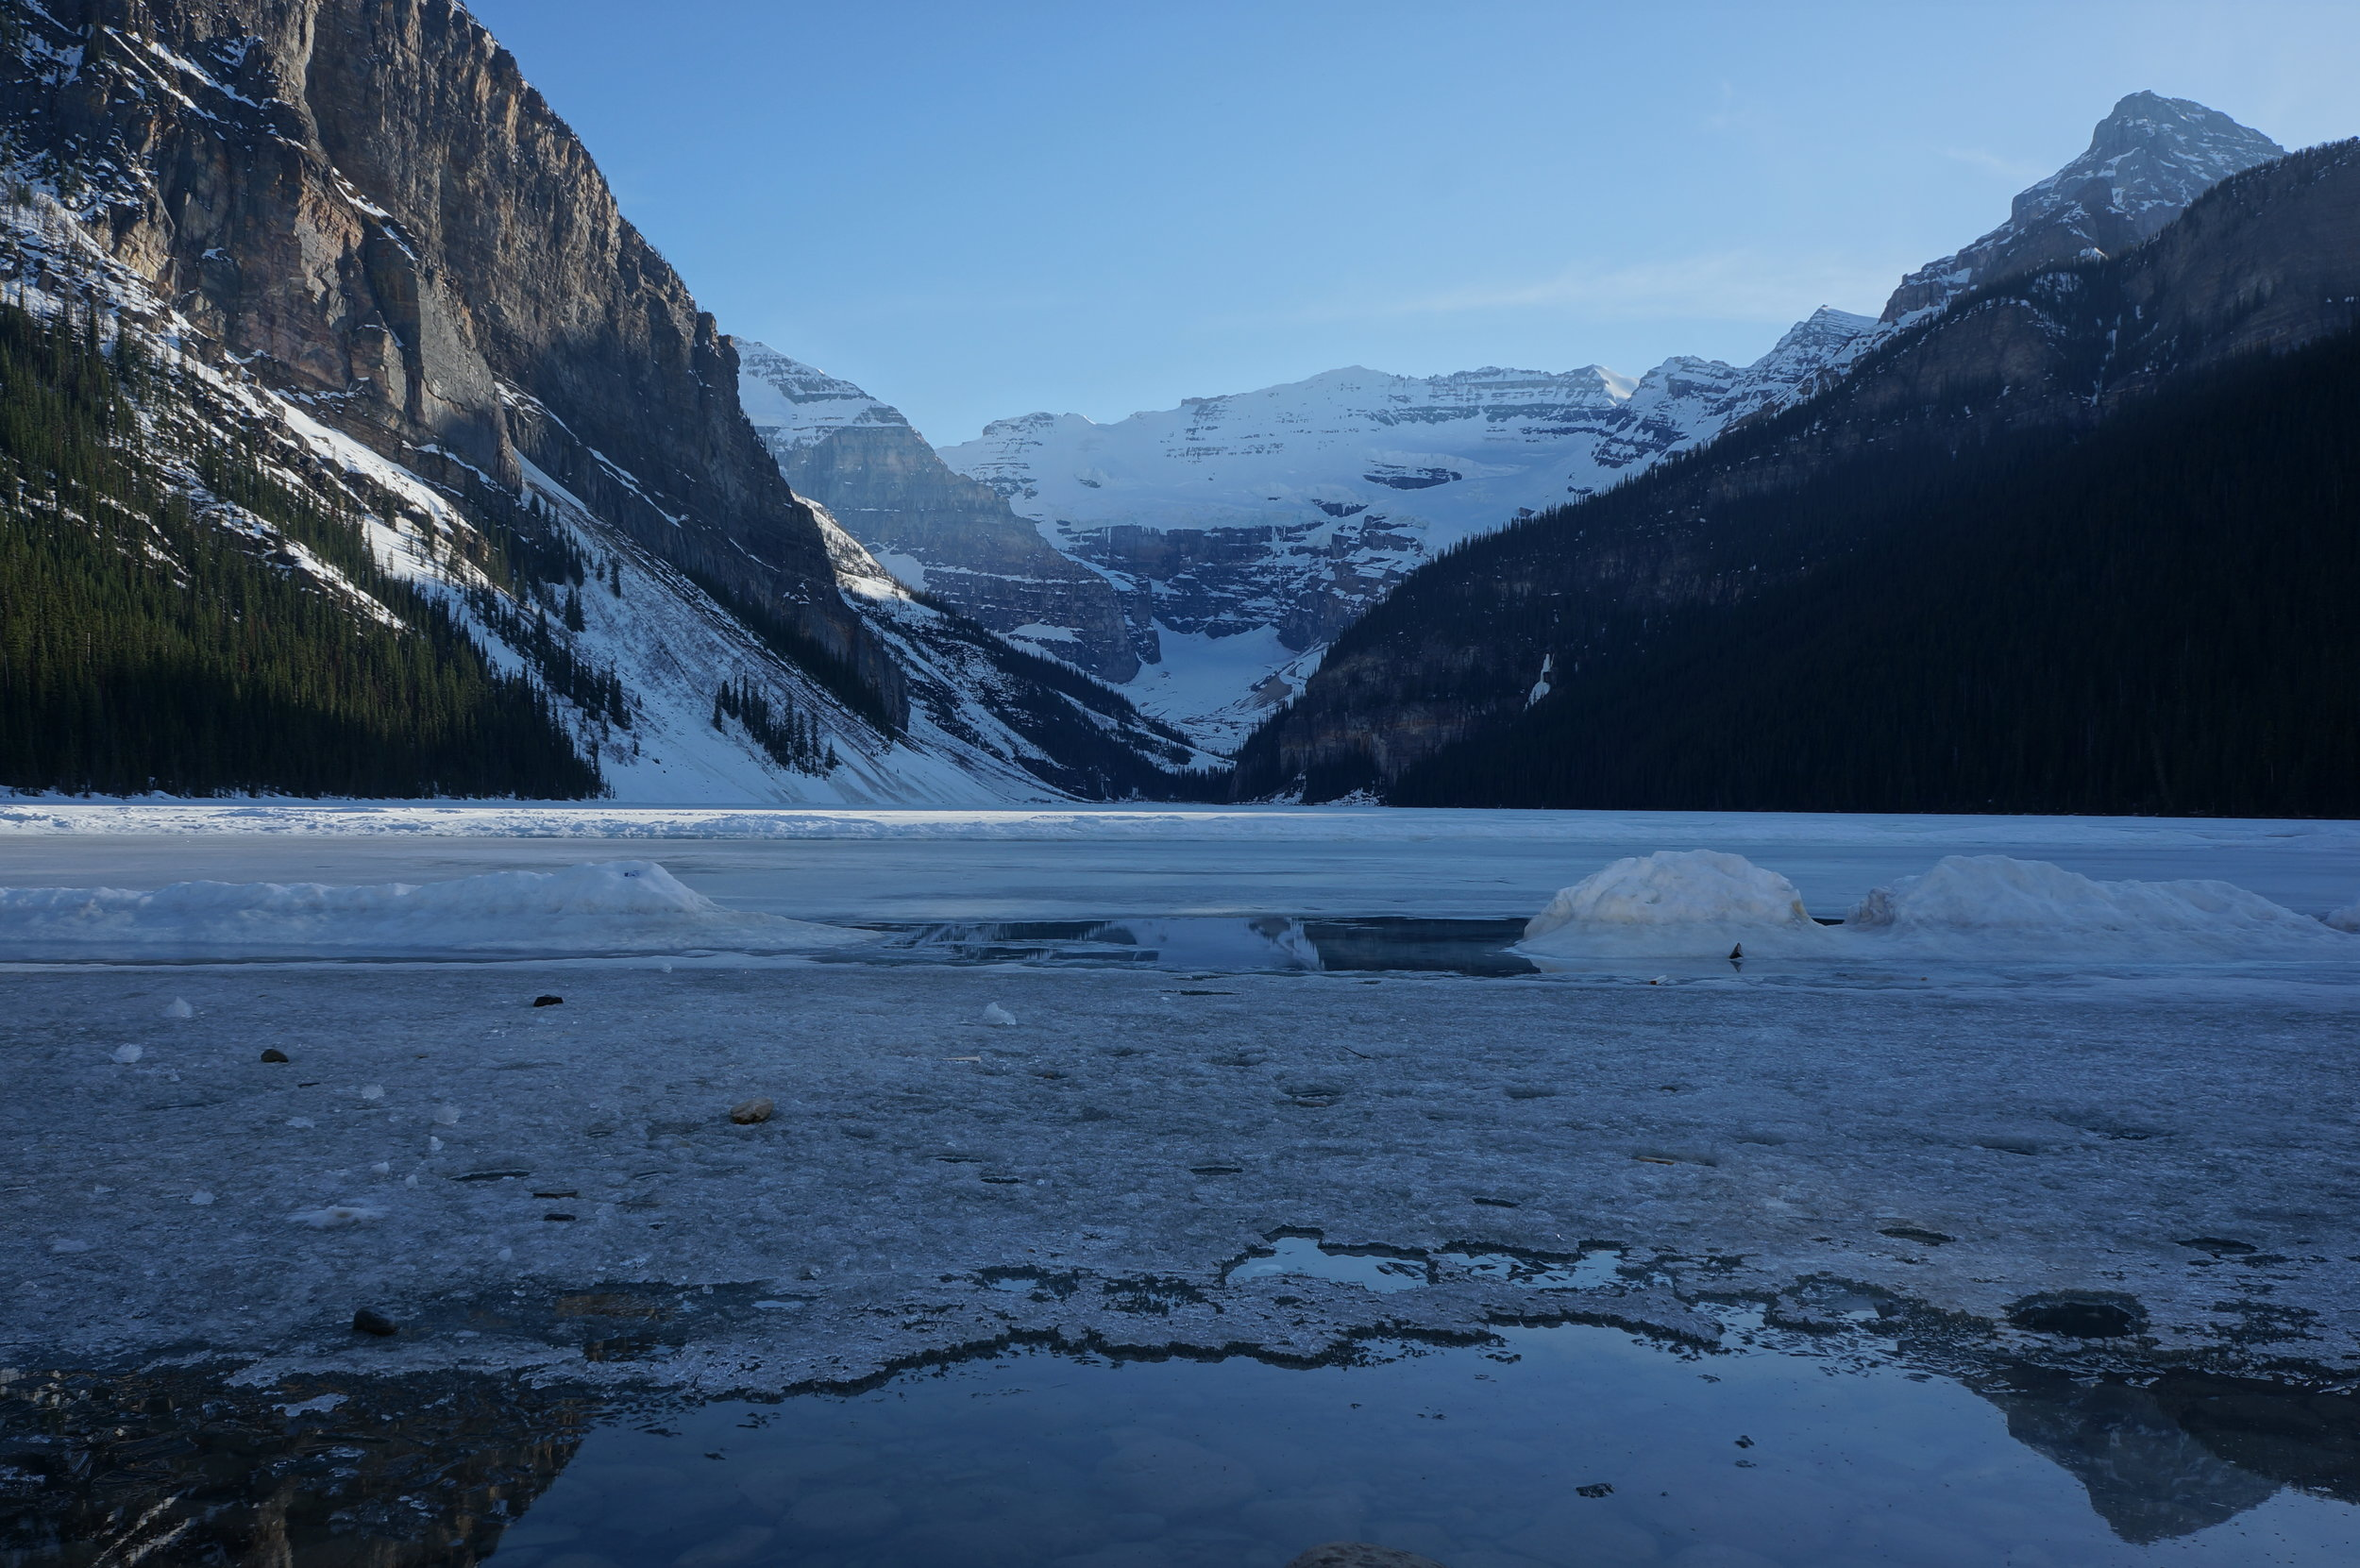 Our photo from our May 2012 visit to Lake Louise. Still frozen!